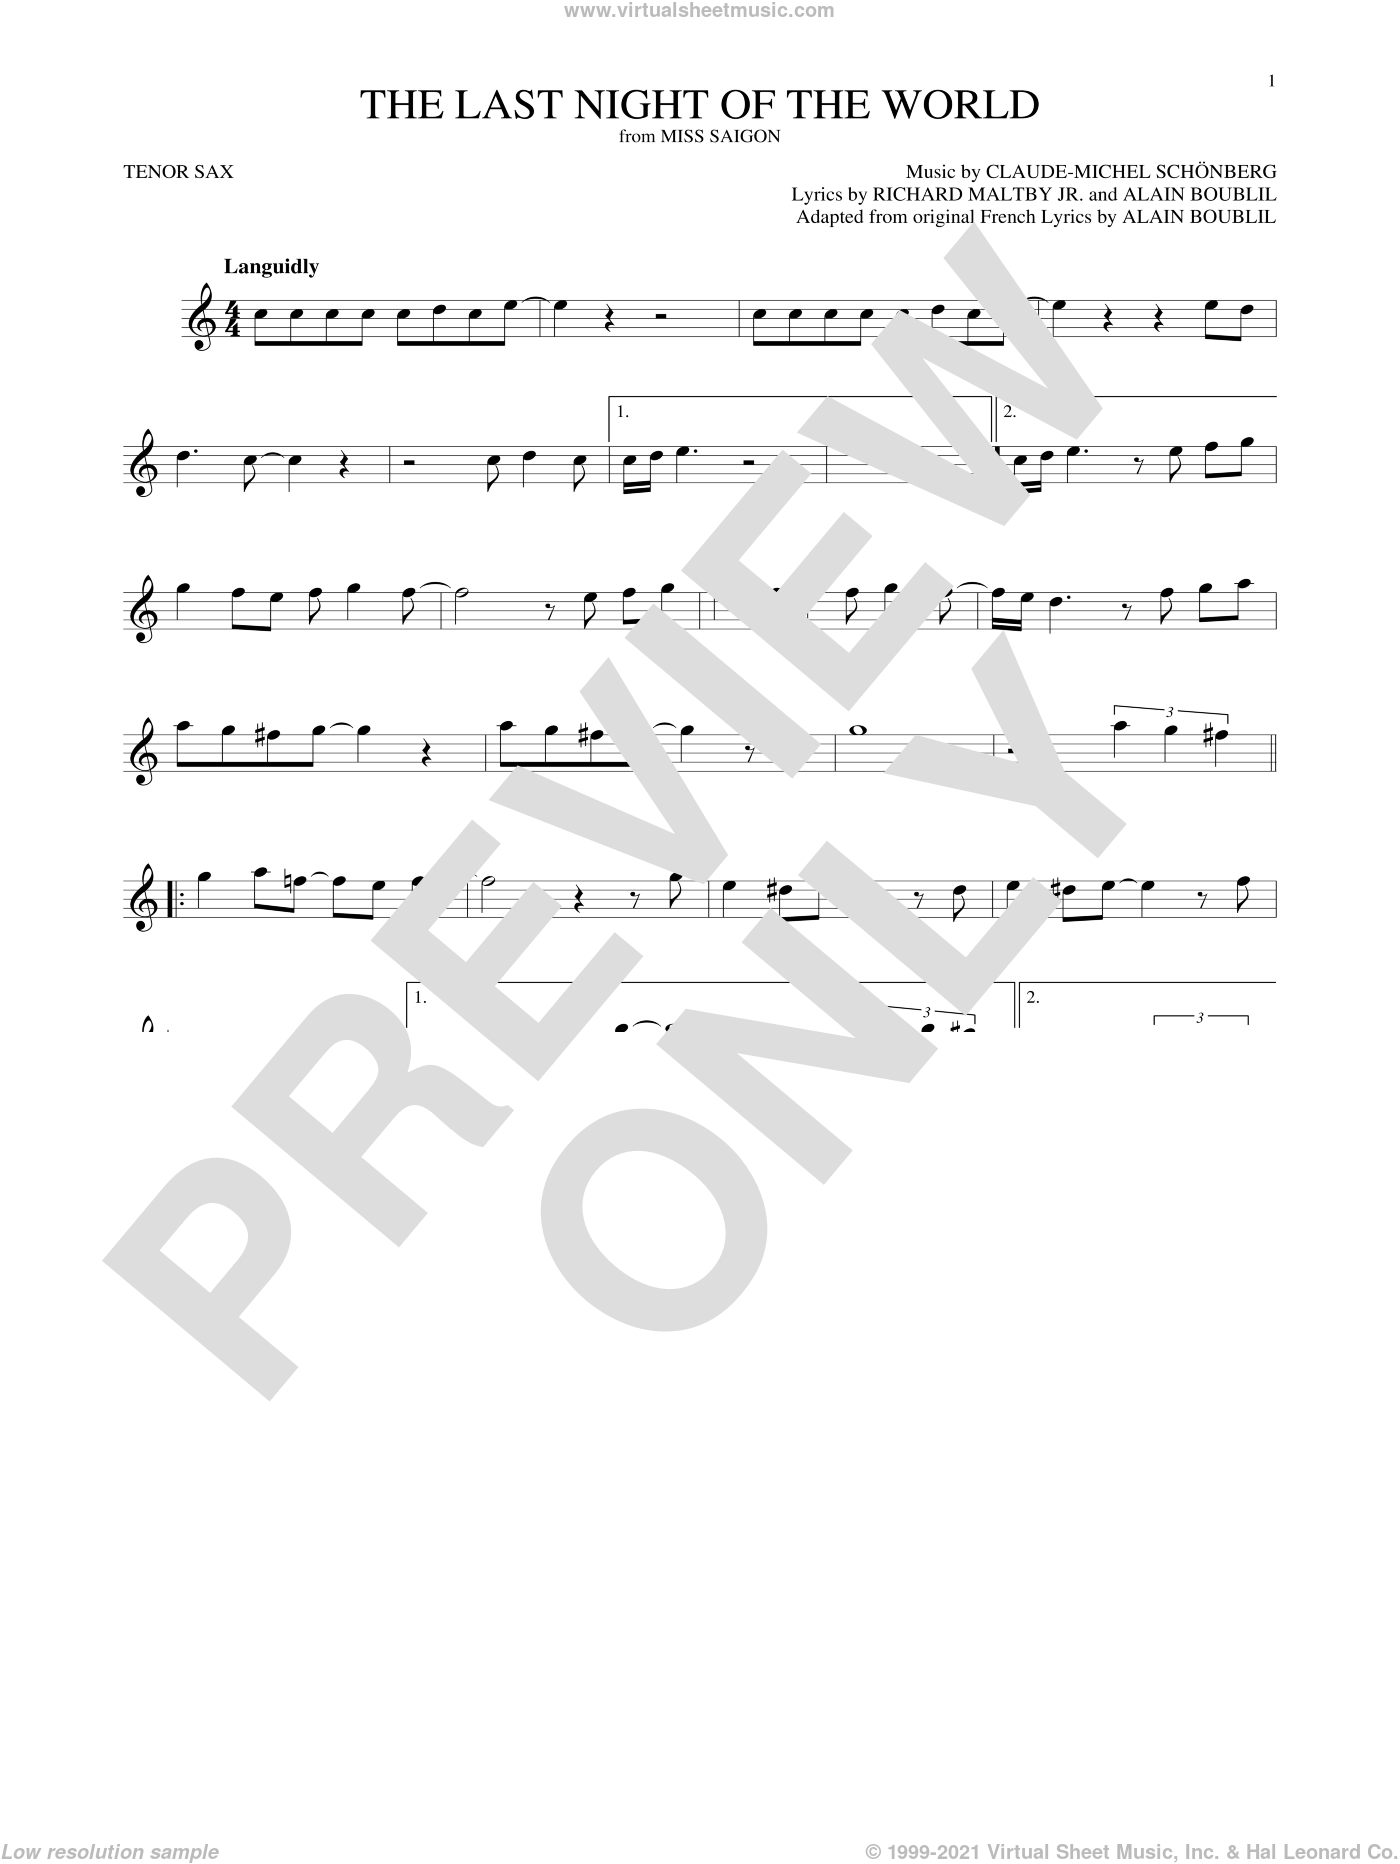 The Last Night Of The World sheet music for tenor saxophone solo by Alain Boublil and Claude-Michel Schonberg and Claude-Michel Schonberg, intermediate skill level